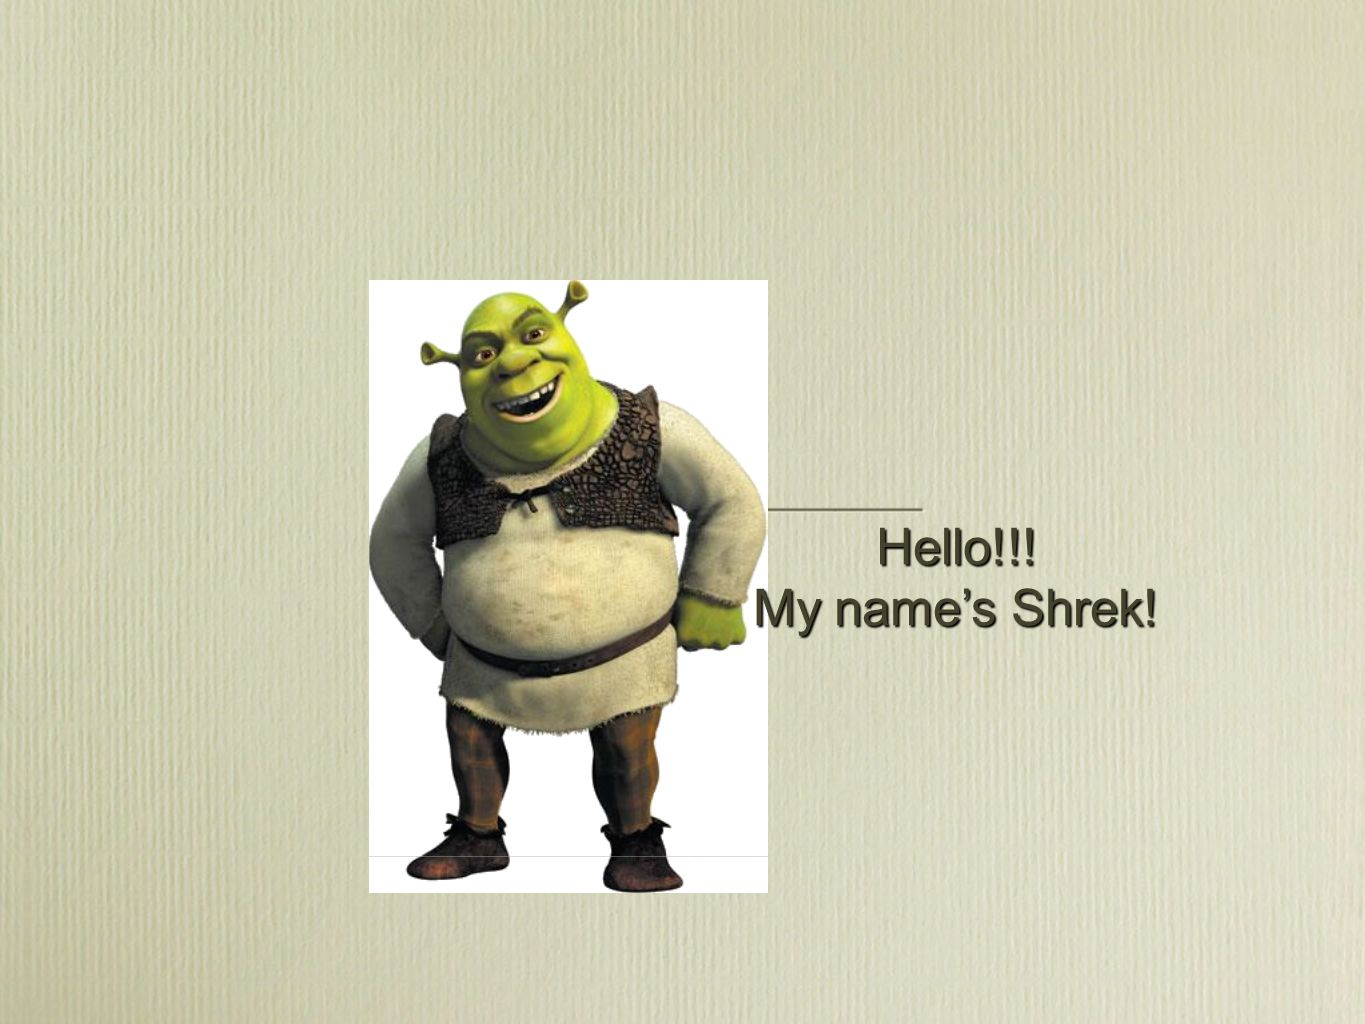 Hello!!! My name's Shrek!